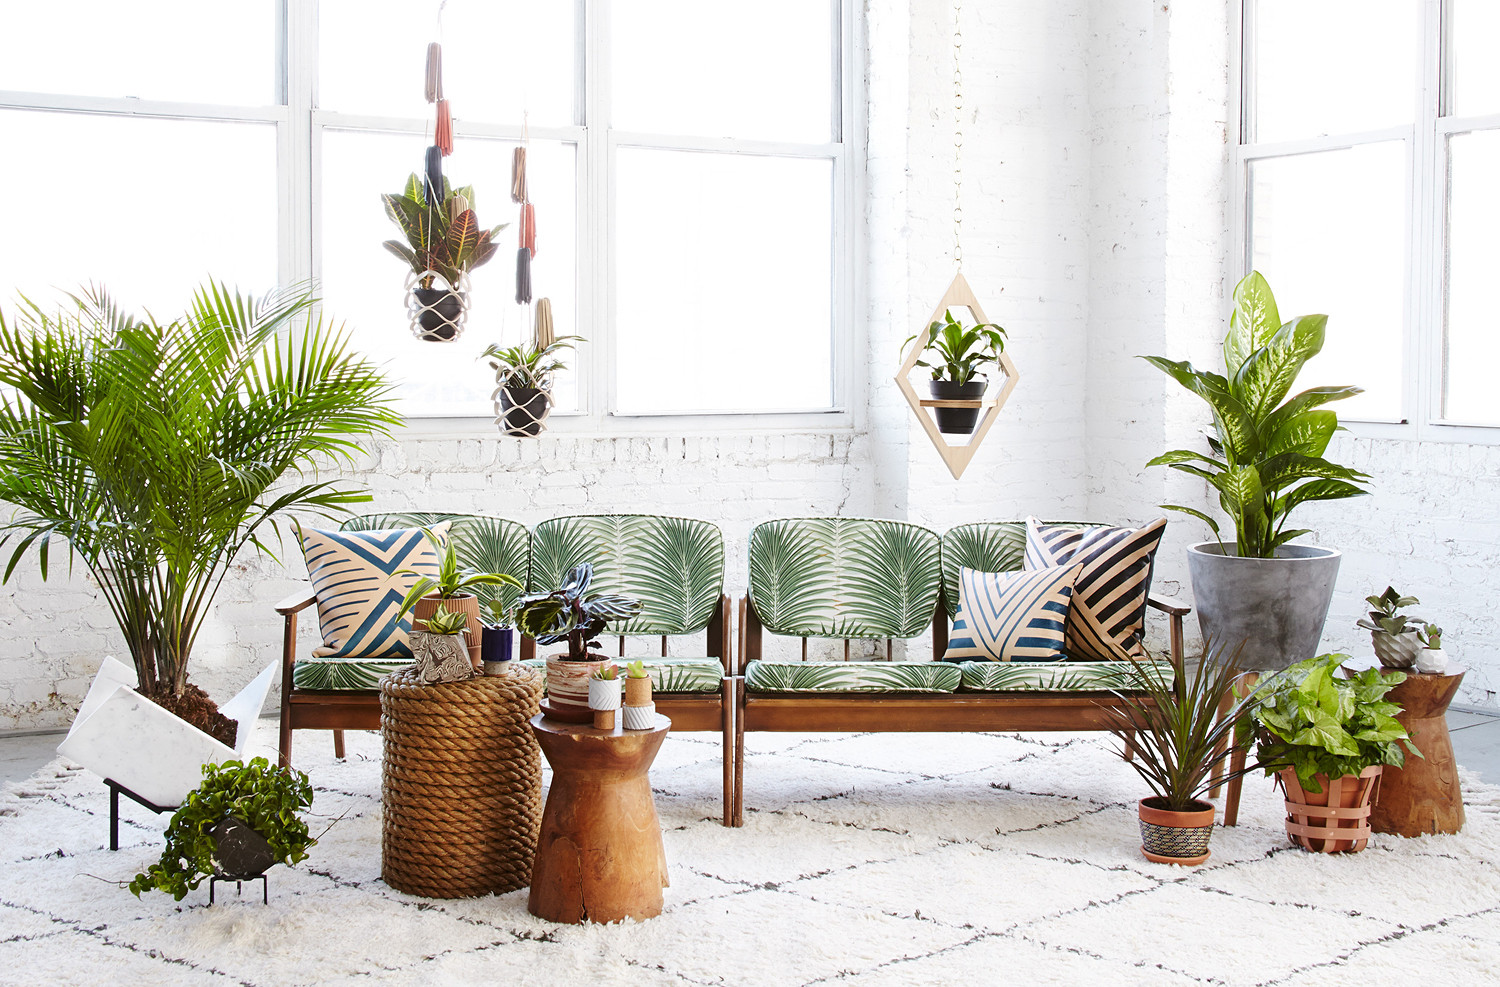 Point/Counterpoint: Fiddle Leaf Fig Trees